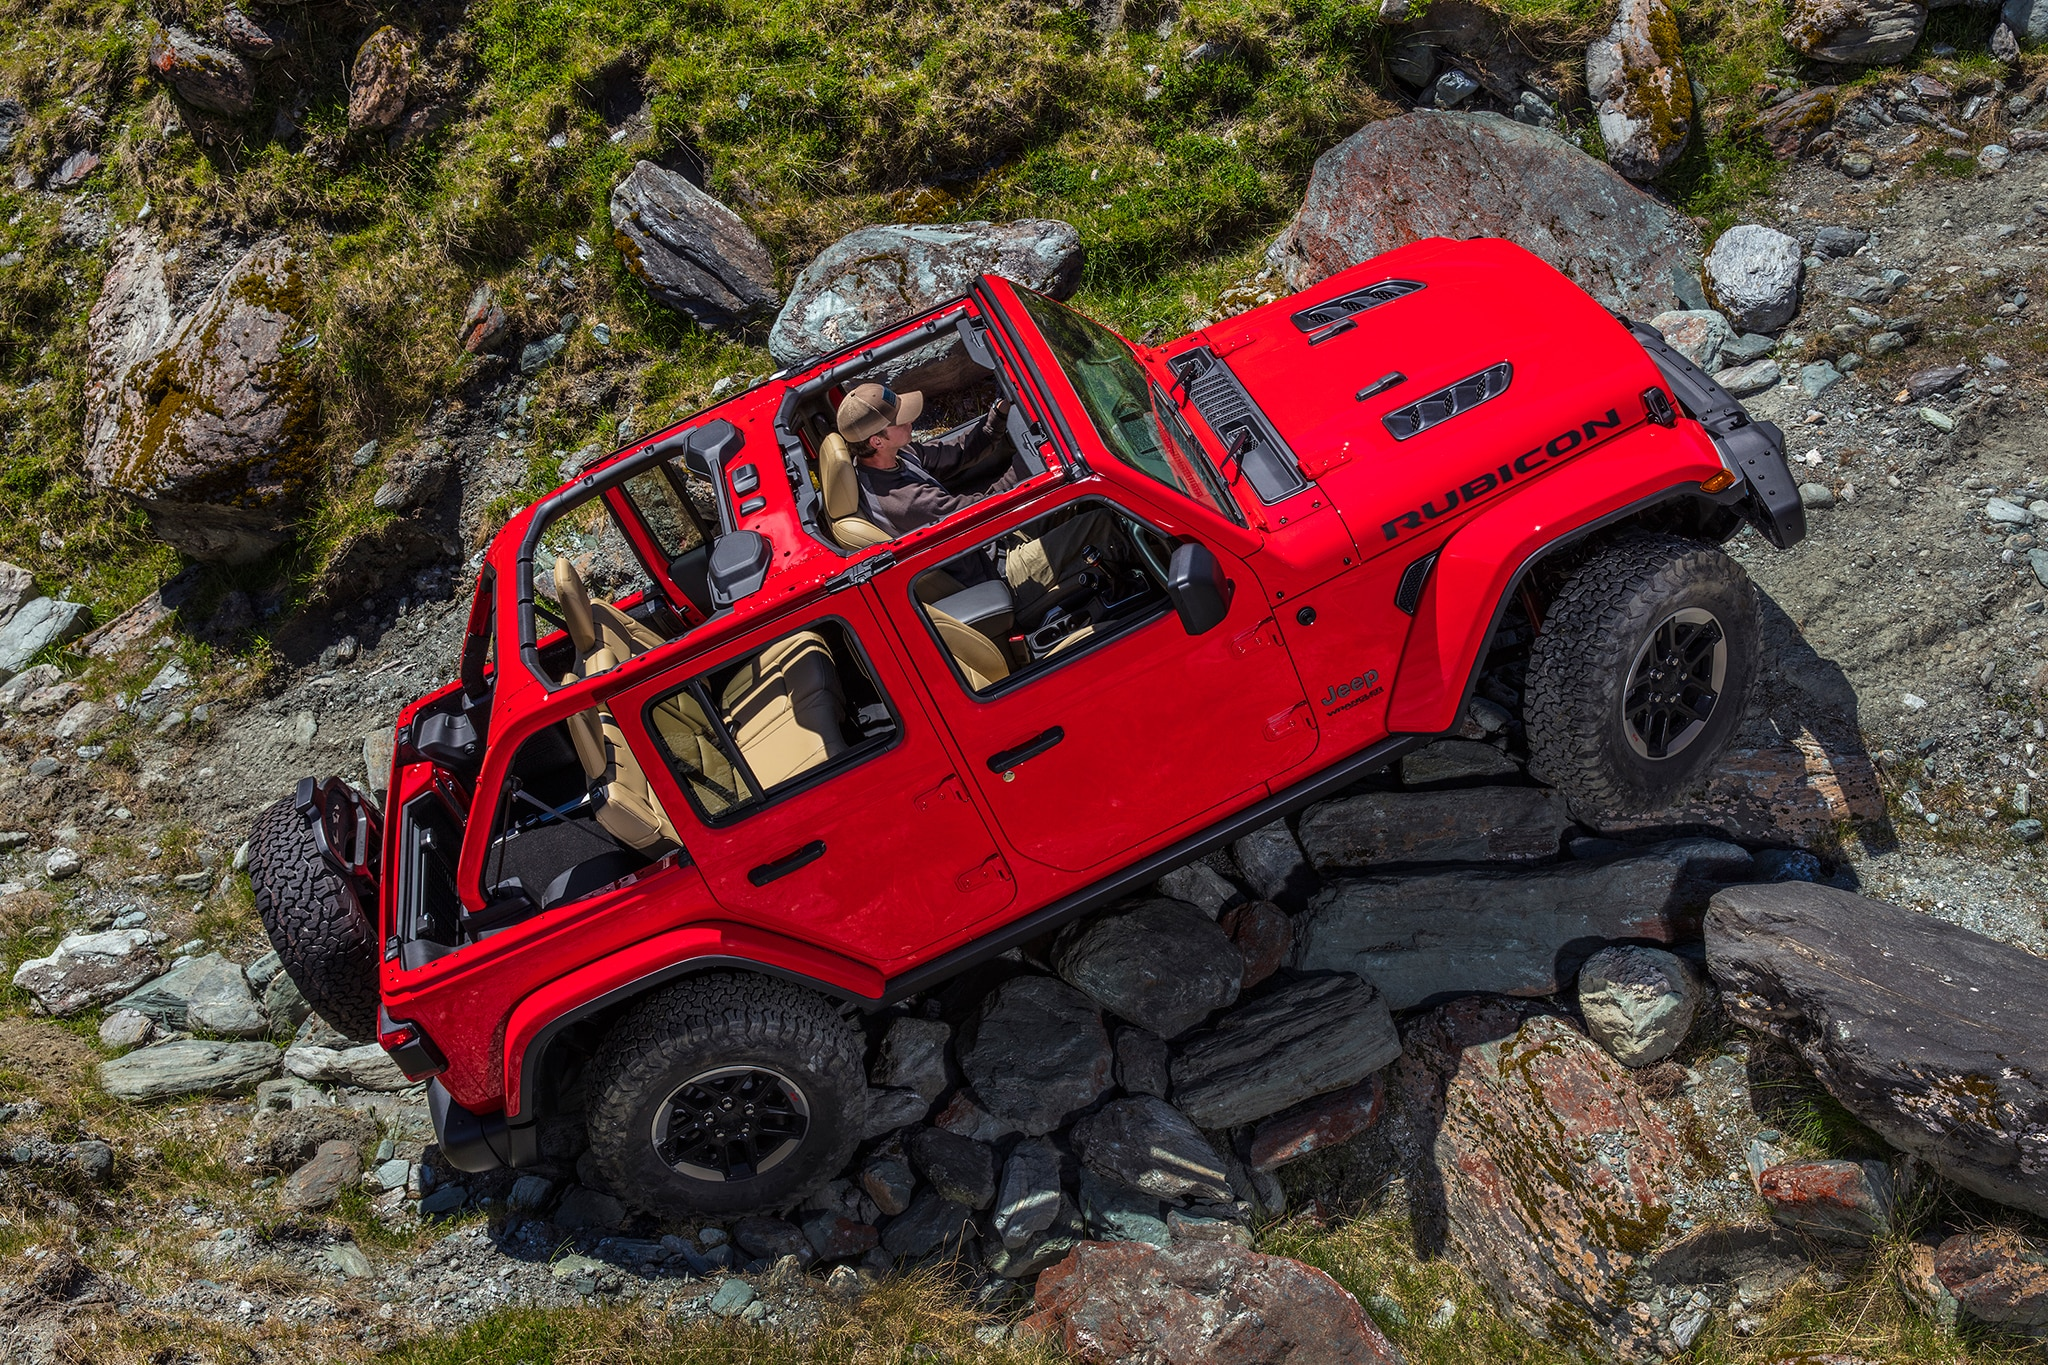 2018 Jeep Wrangler Unlimited Rubicon Side Profile 01